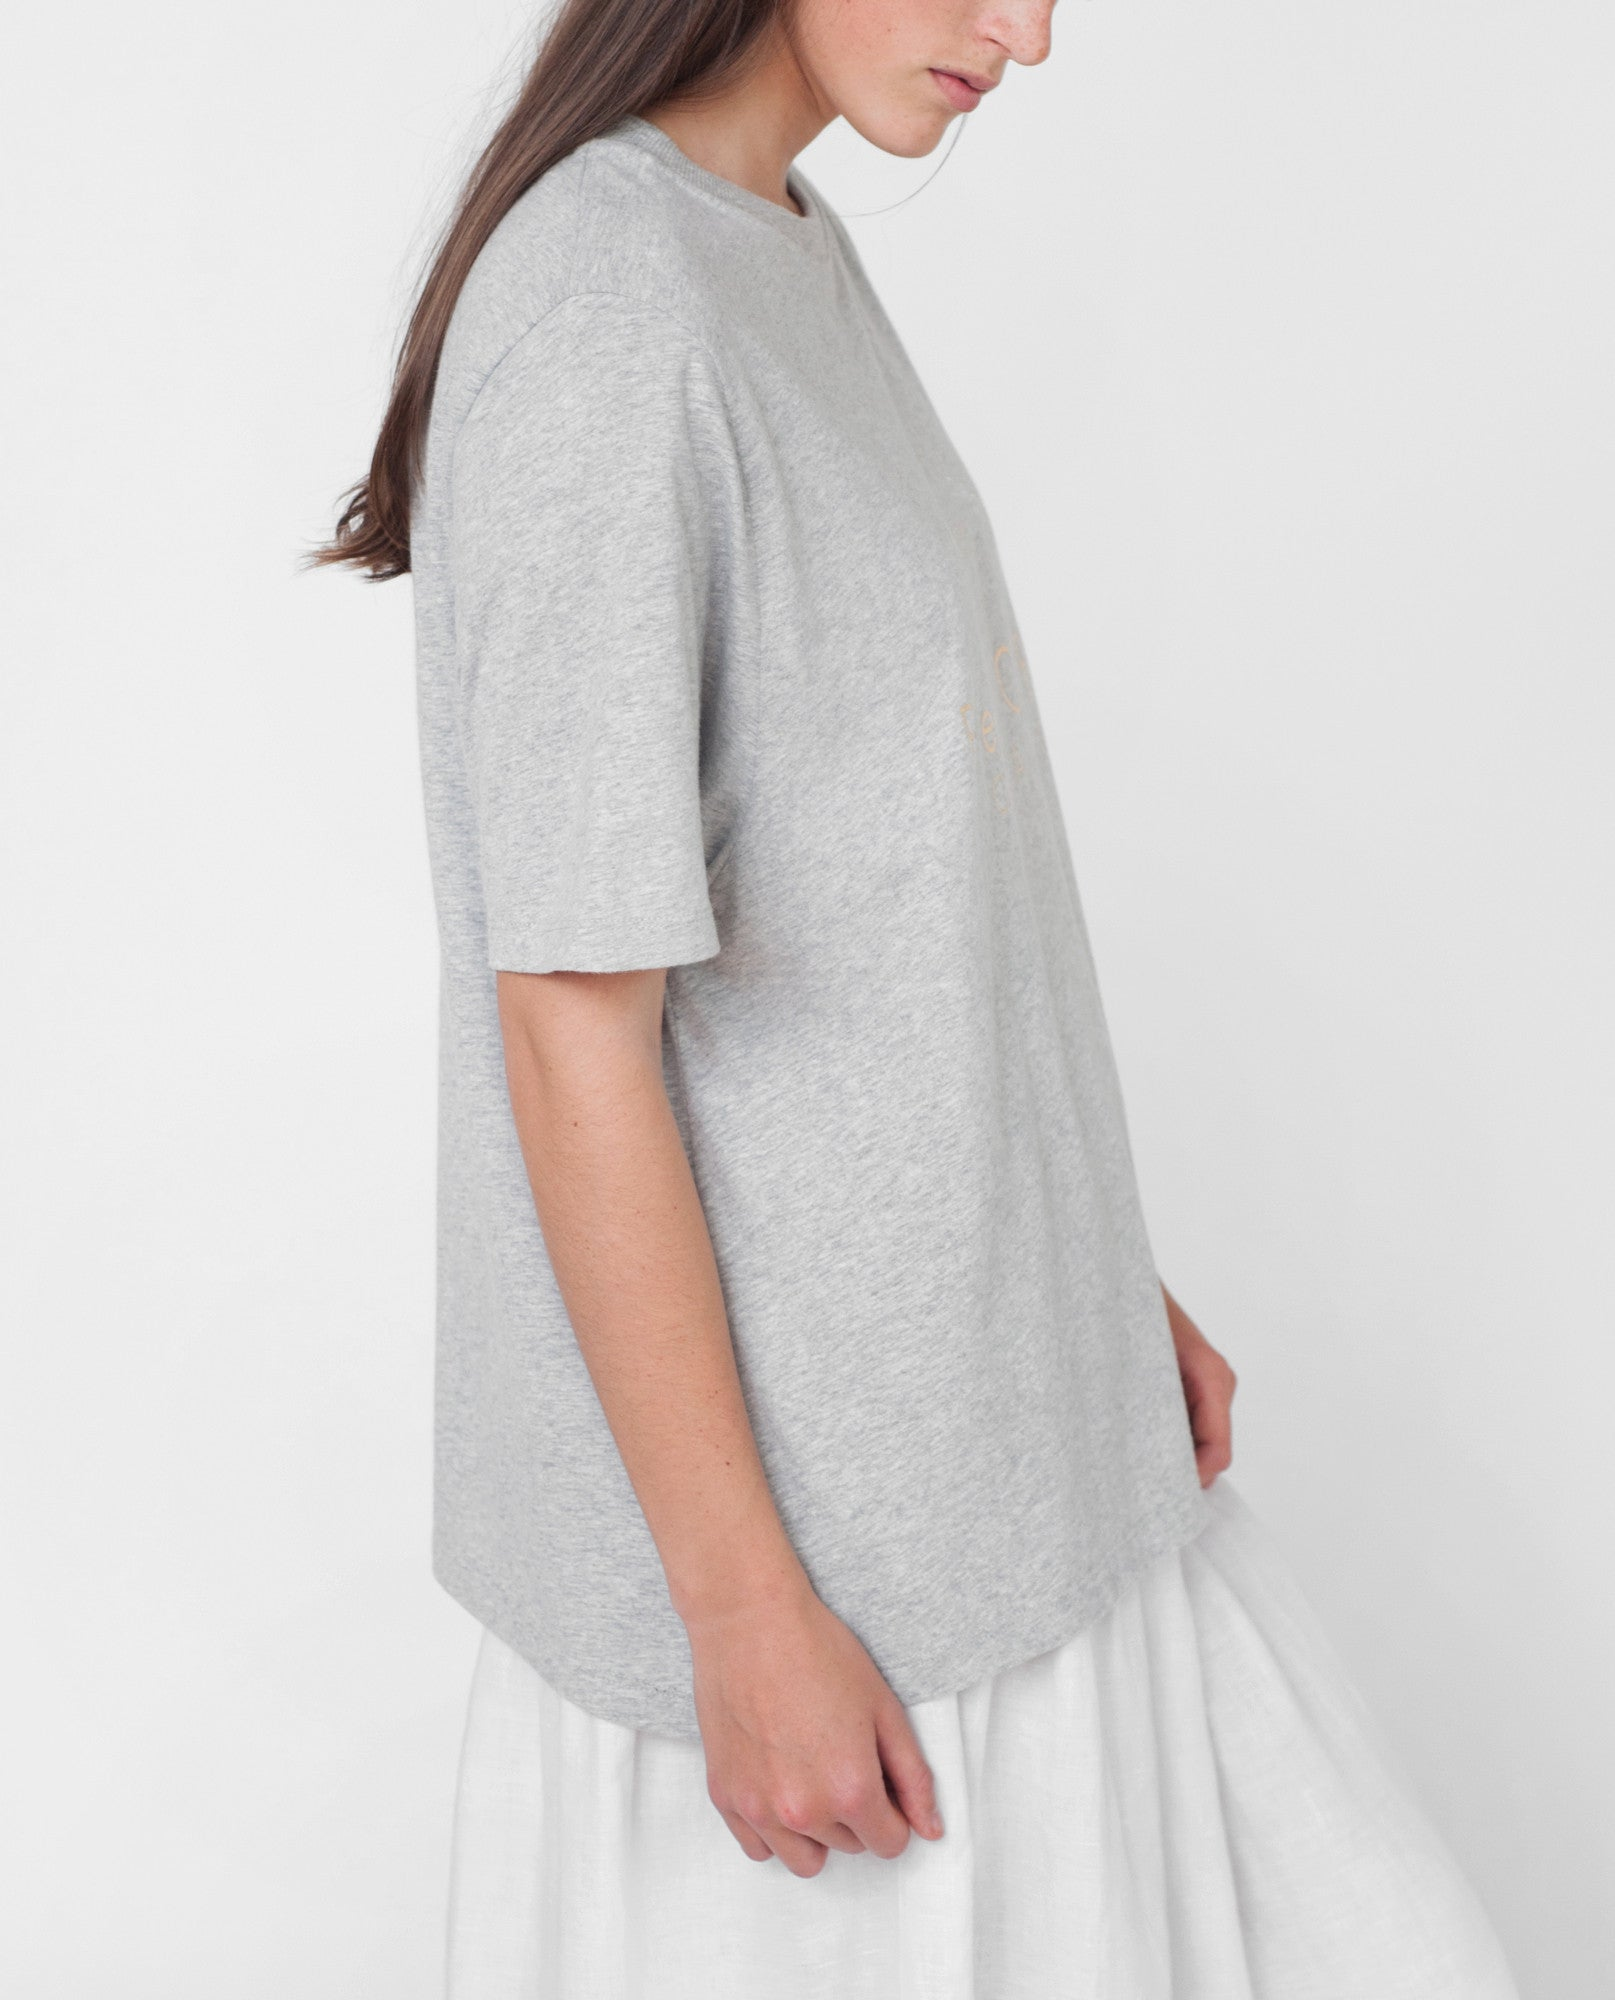 ANNIE Organic Cotton Print Tshirt In Light Grey